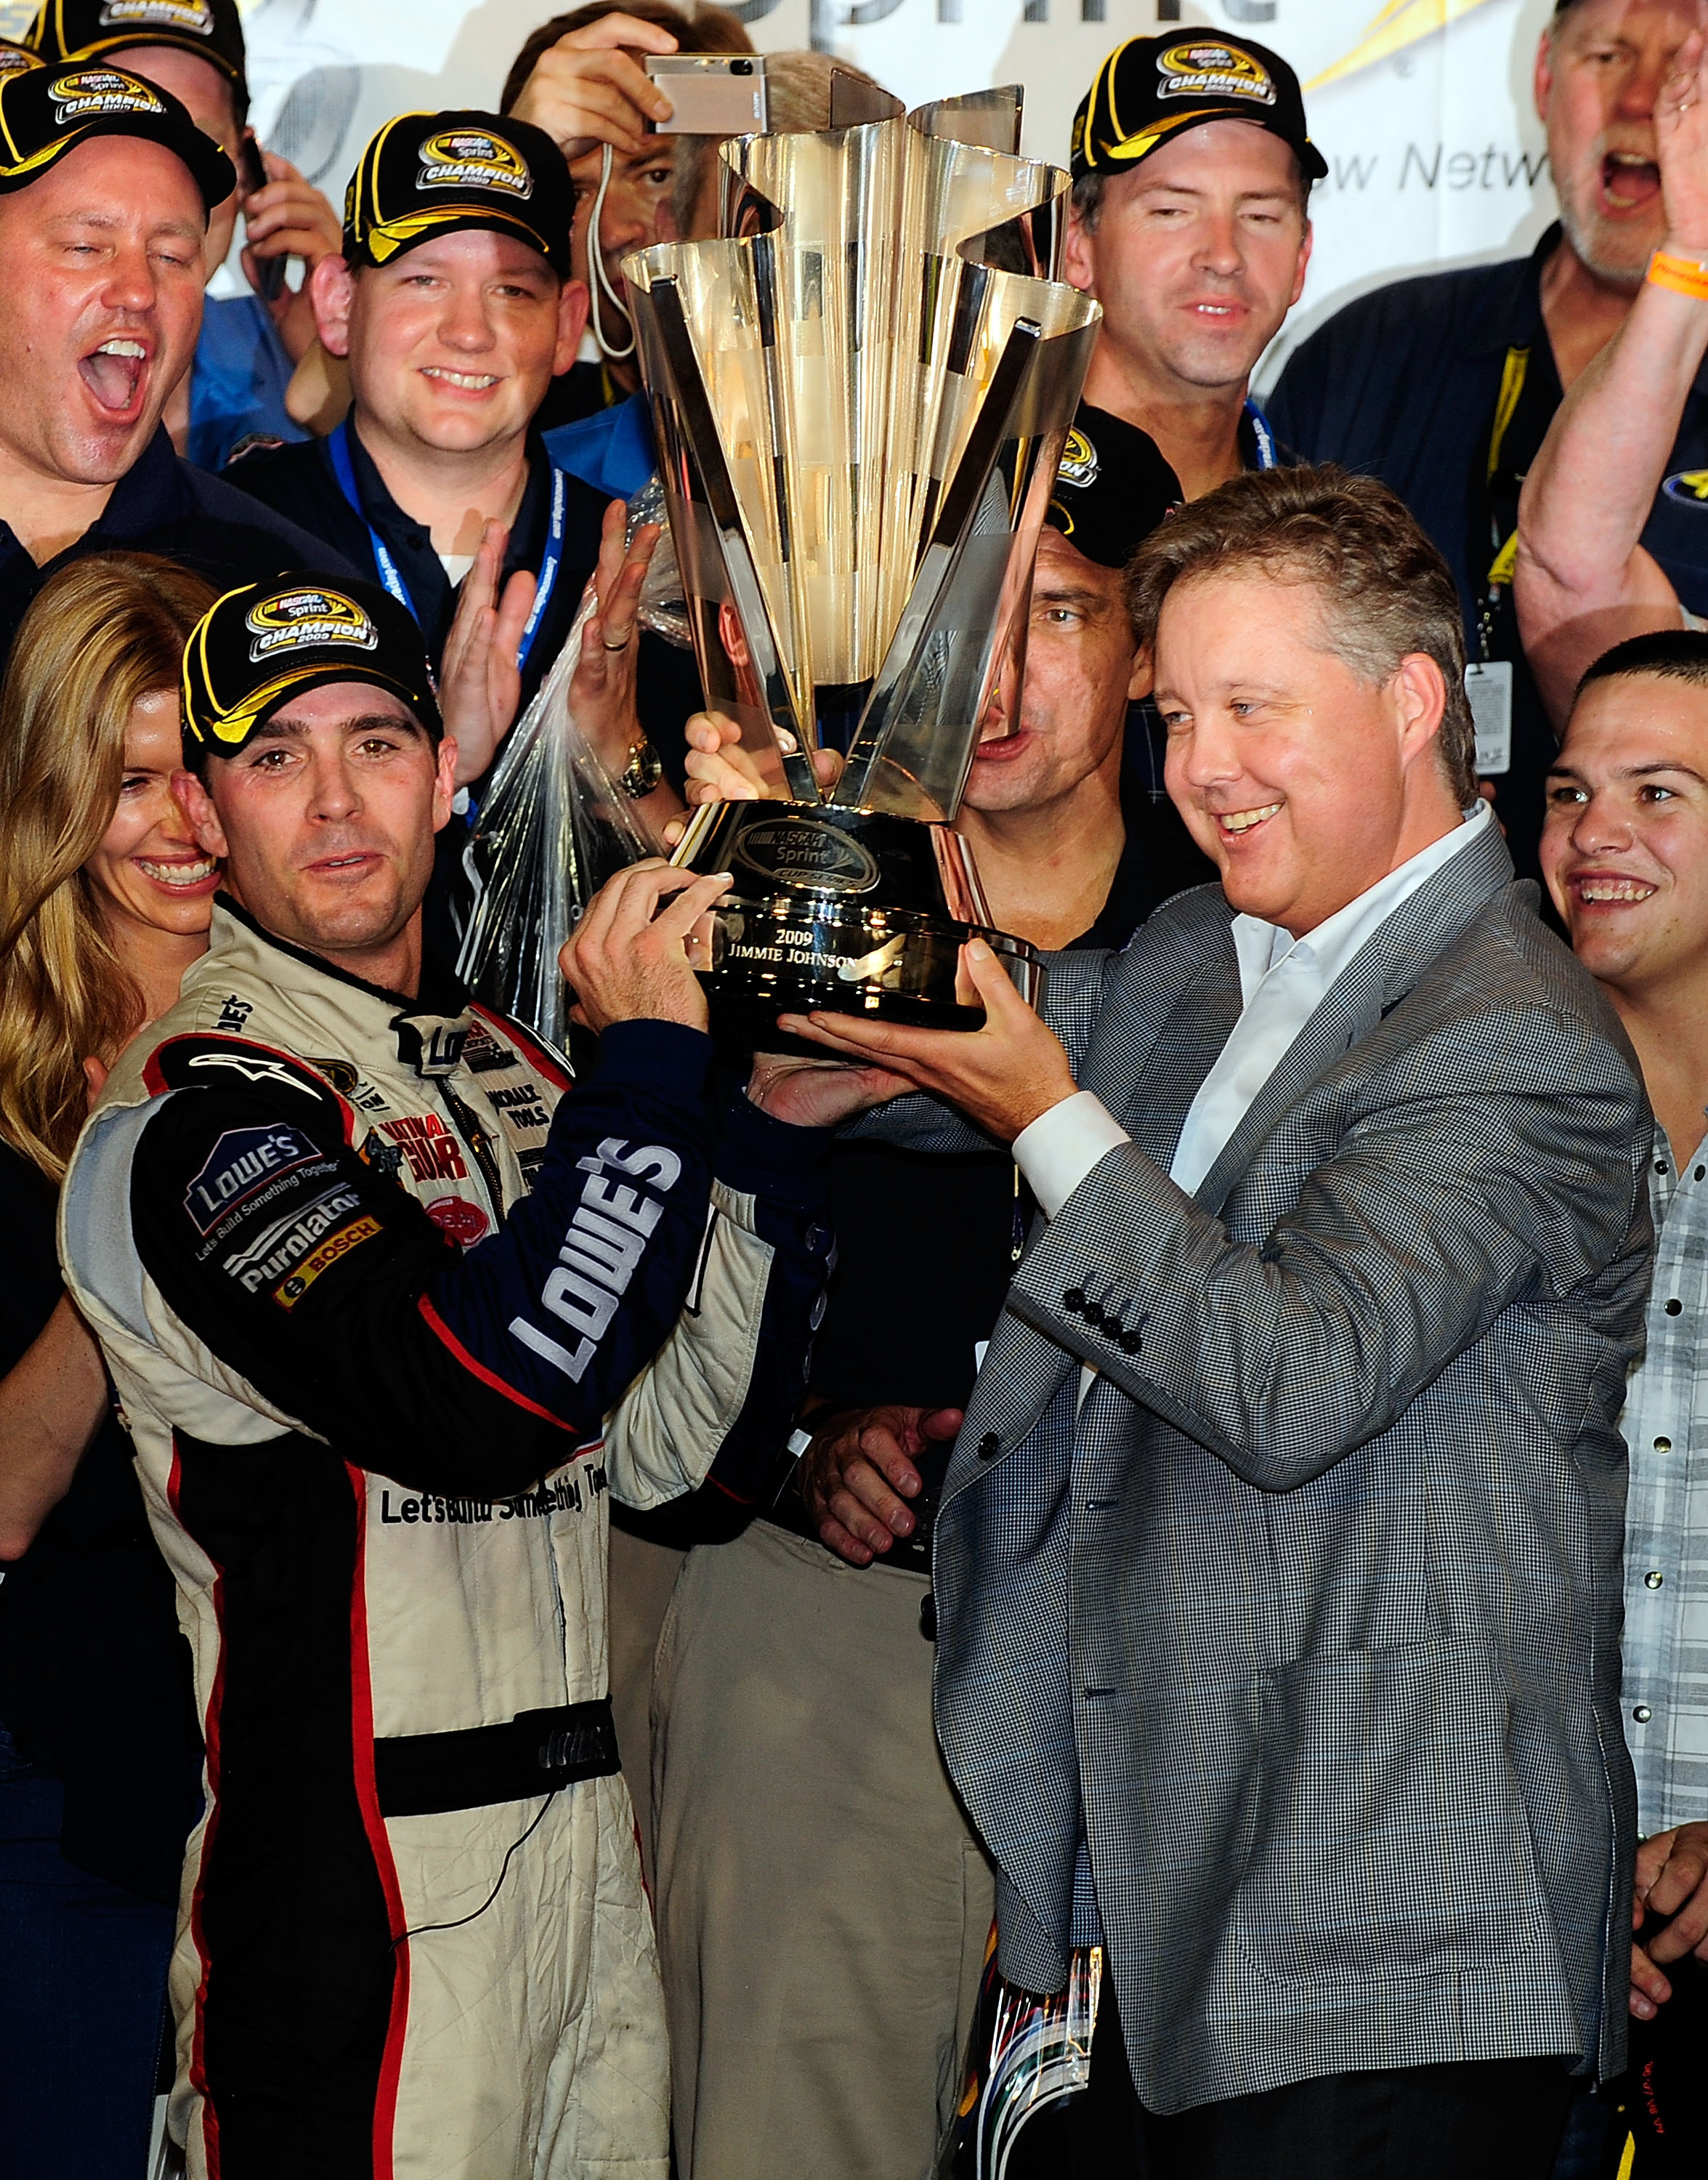 HOMESTEAD, FL - NOVEMBER 22:  Jimmie Johnson (L), driver of the #48 Lowe's Chevrolet, and NASCAR Chairman and CEO Brian France hoist the trophy after winning the NASCAR Sprint Cup Series Championship after finishing in fifth place in the Ford 400 at Homes